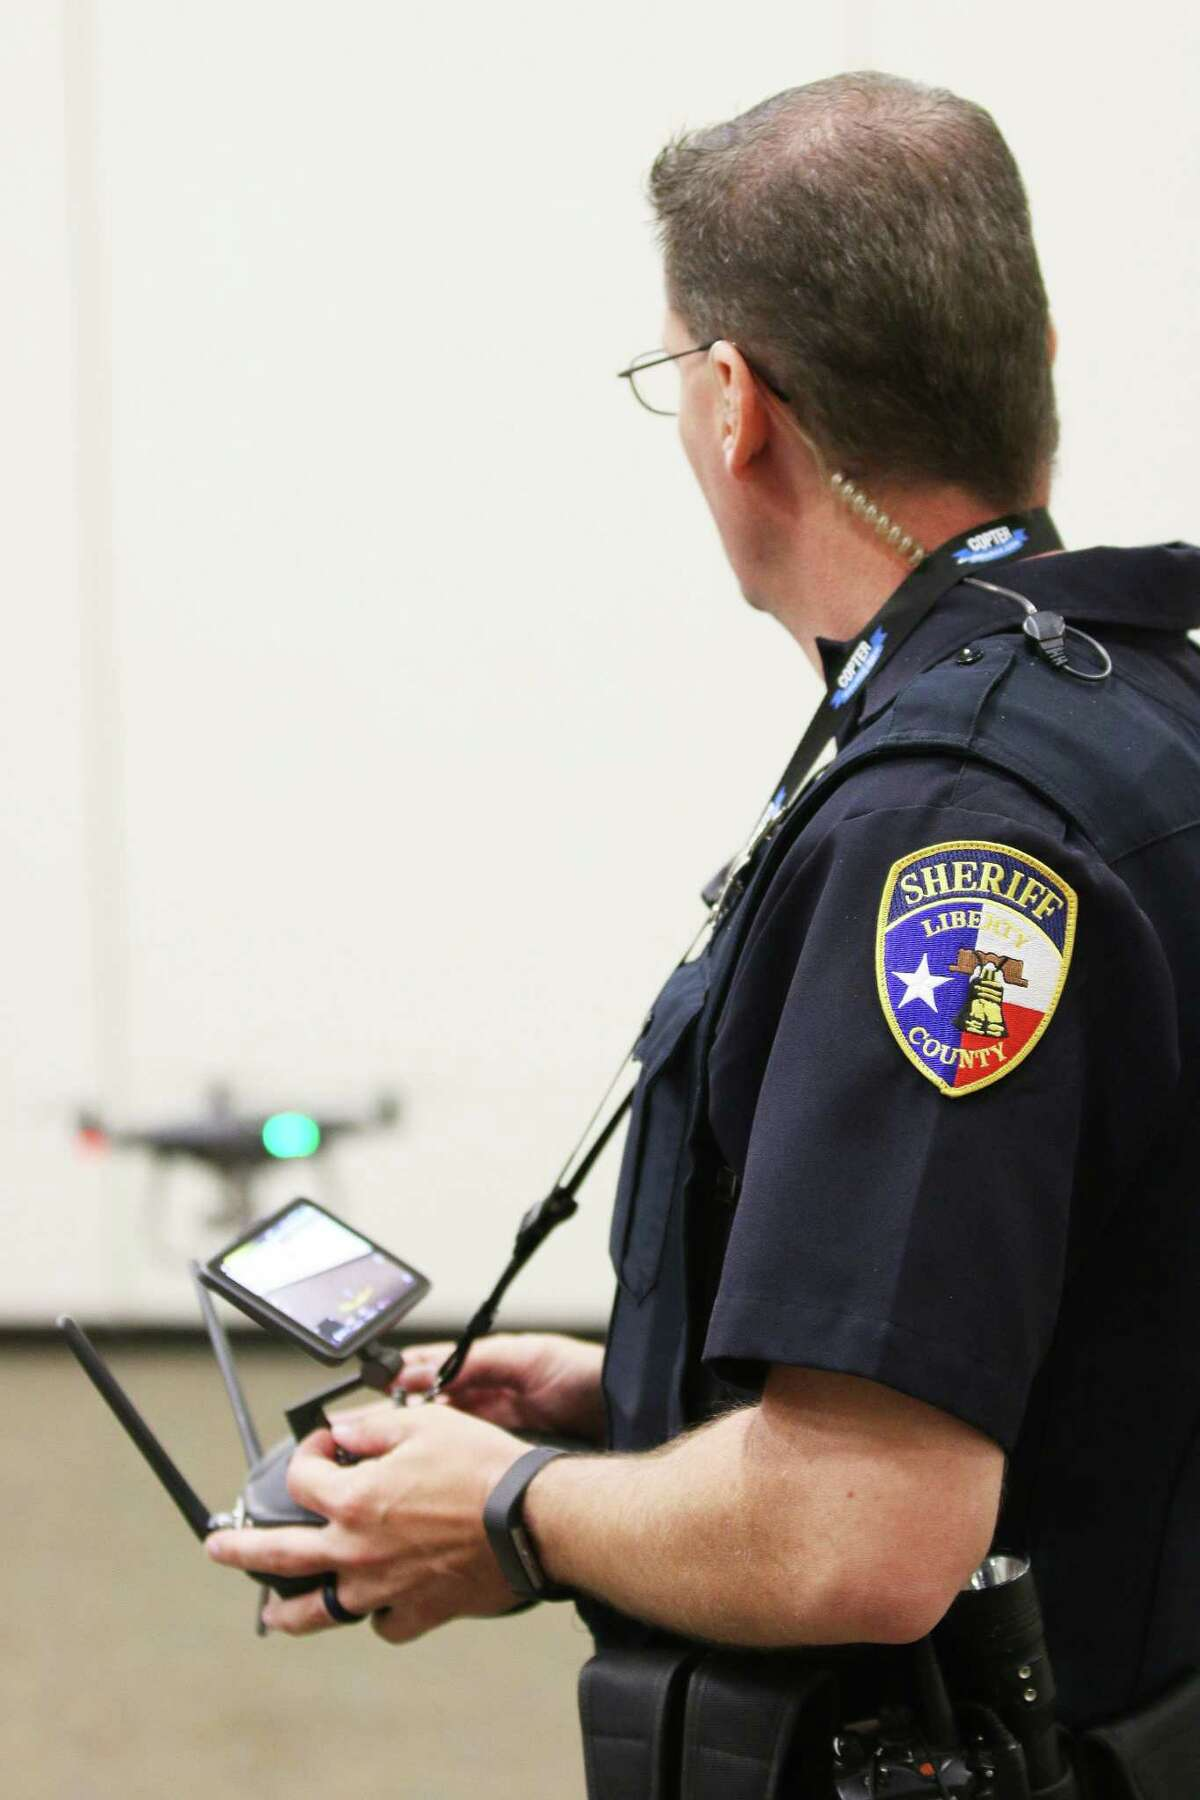 Chief Pilot and Investigator Sean Mitchell last year demonstrated the Liberty County Sheriff's Office first Phantom 4 Pro Plus small unmanned aircraft or drone to Dayton Rotarians.